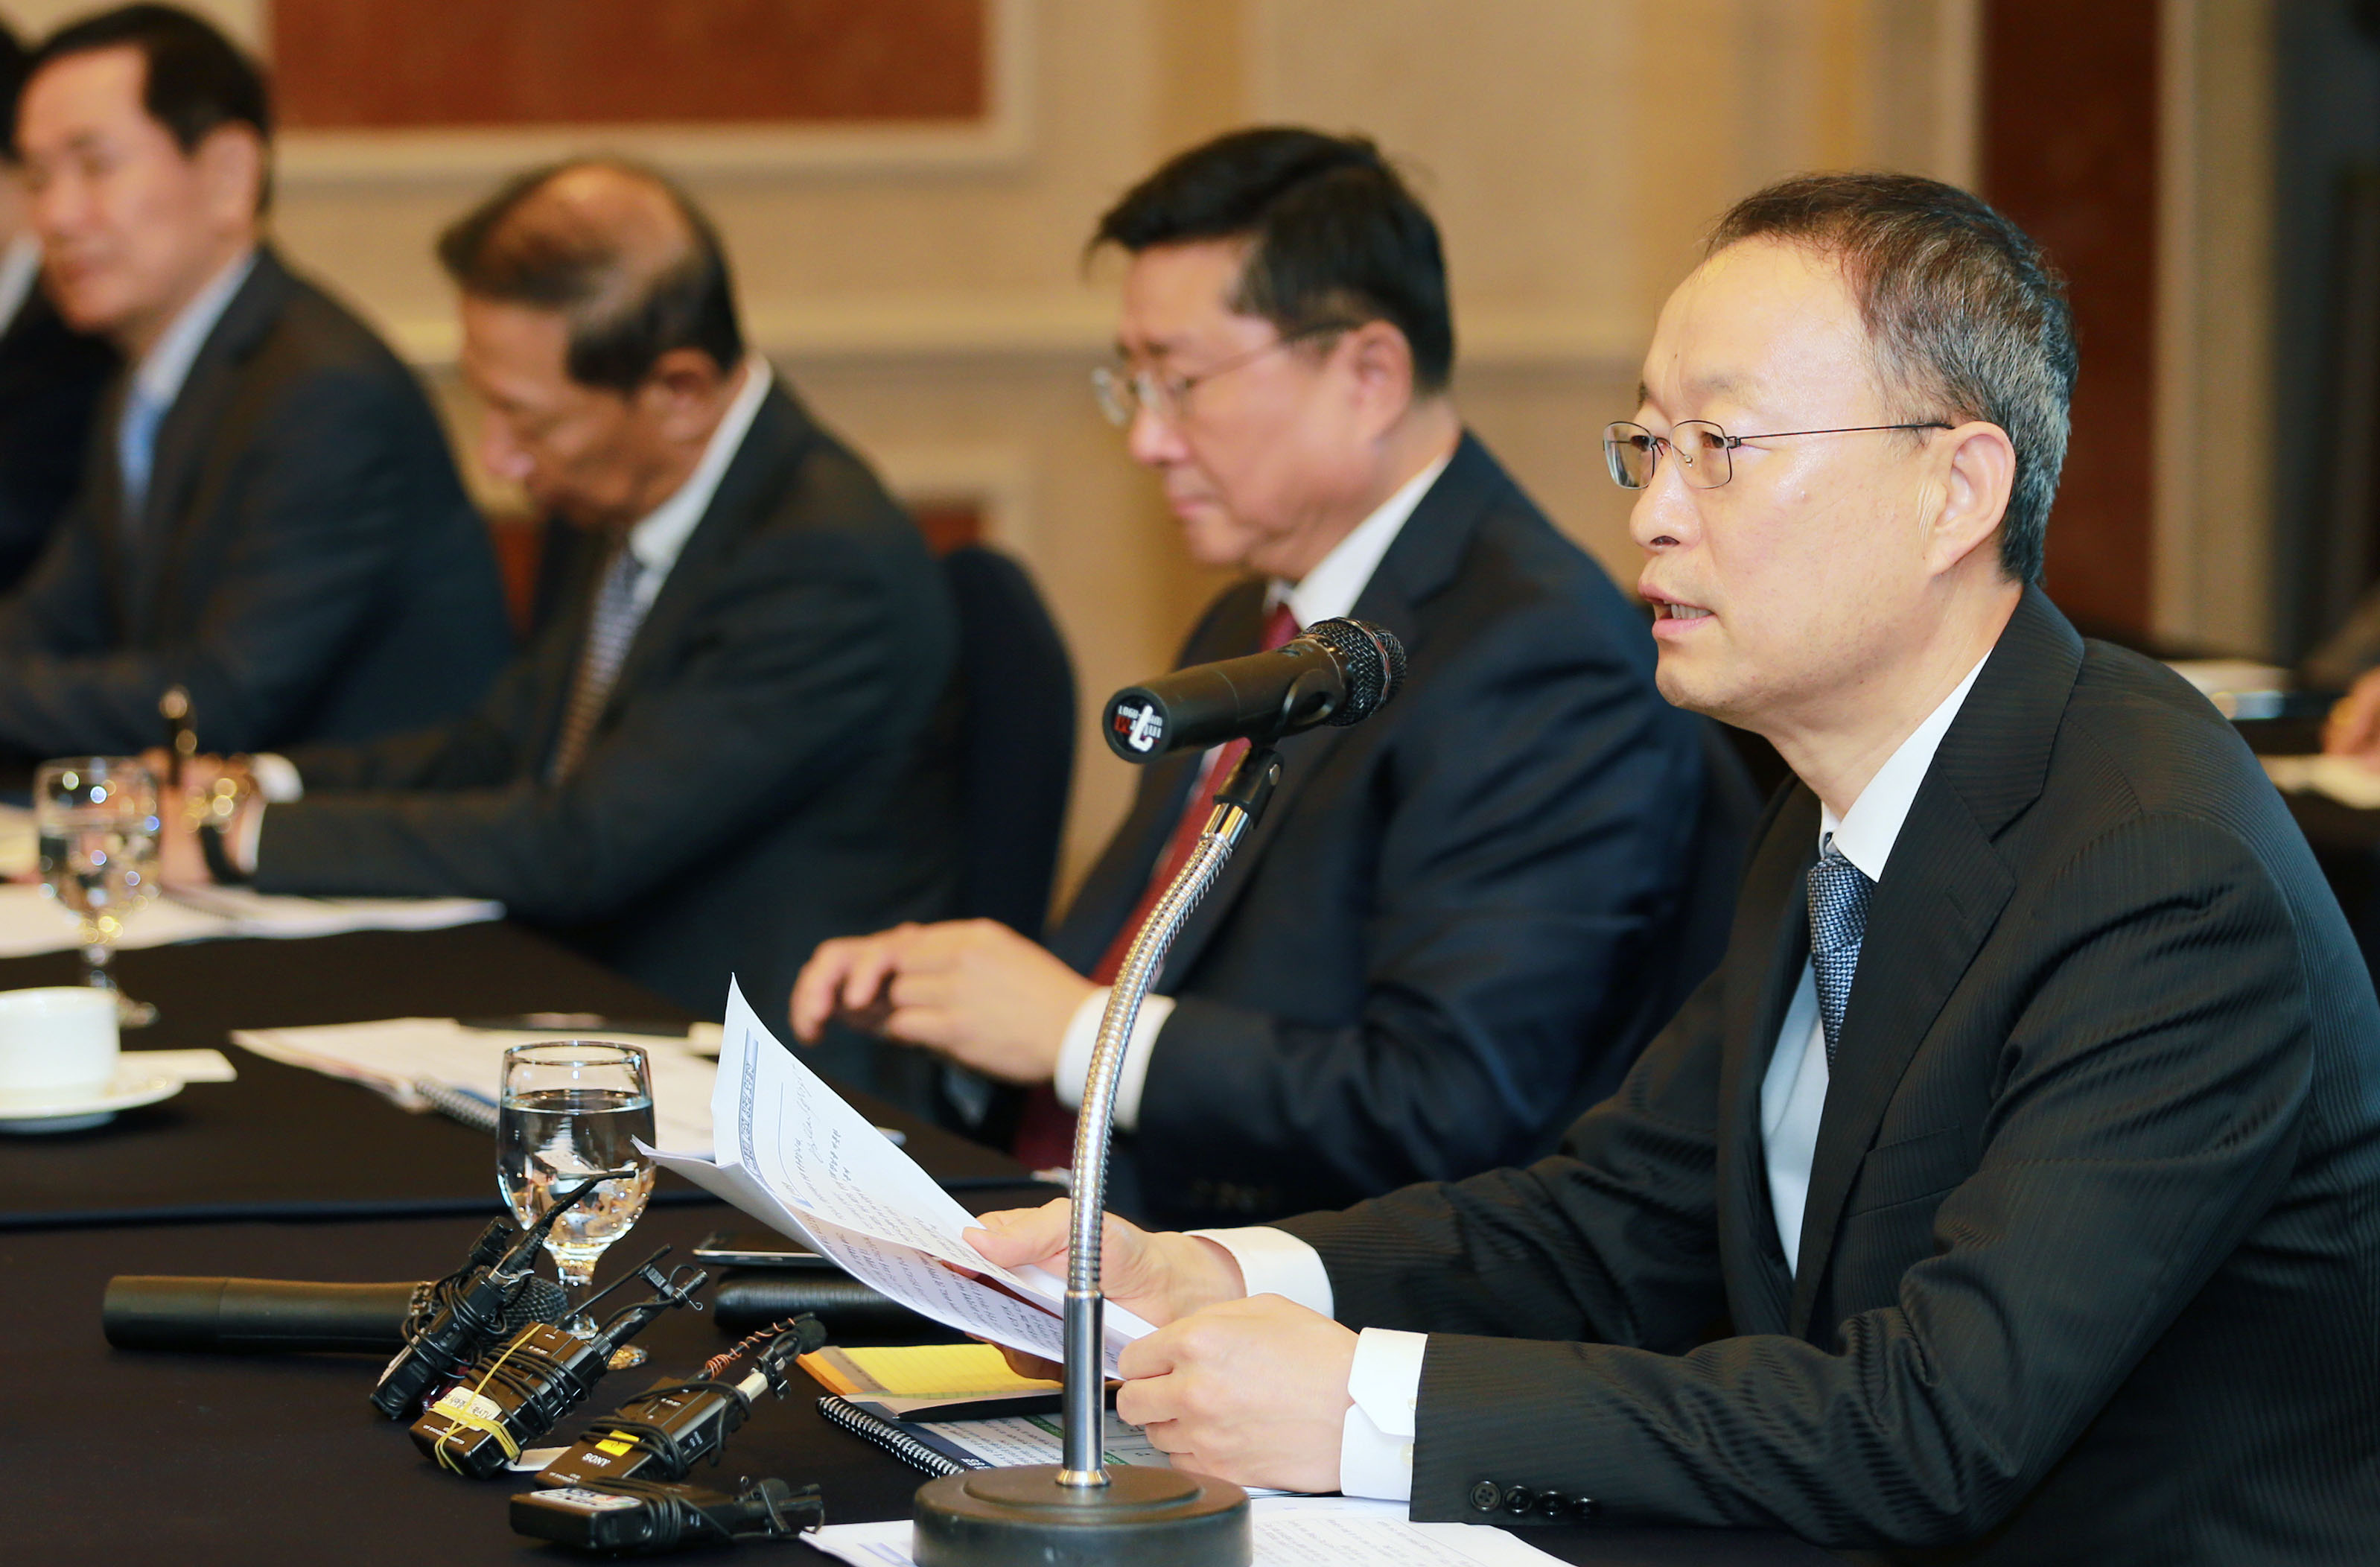 Minister Paik discusses investment with semiconductor, display industry leaders